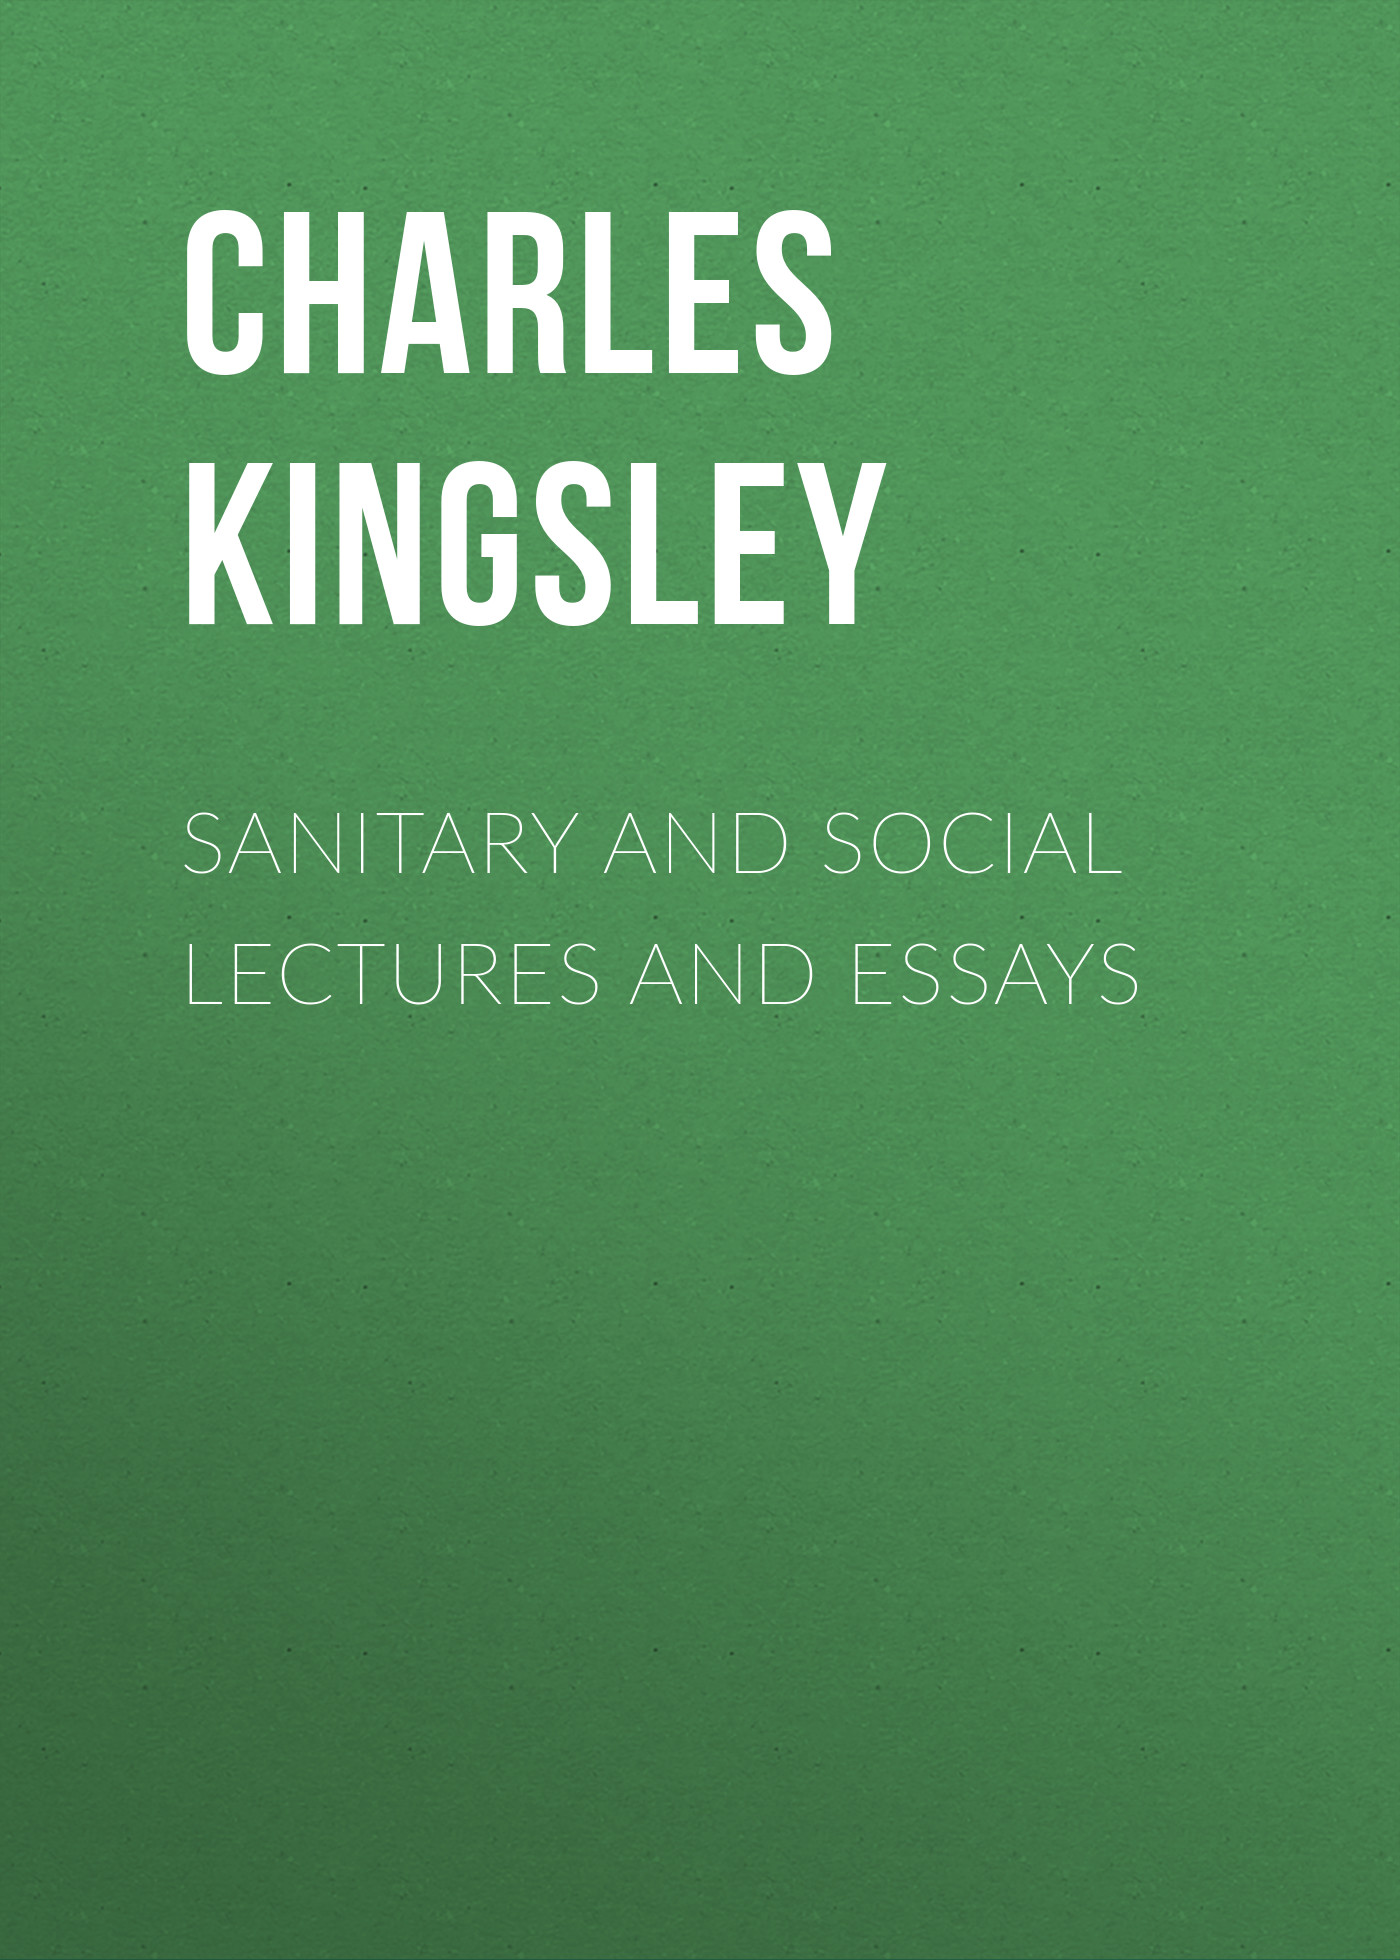 Charles Kingsley Sanitary and Social Lectures and Essays